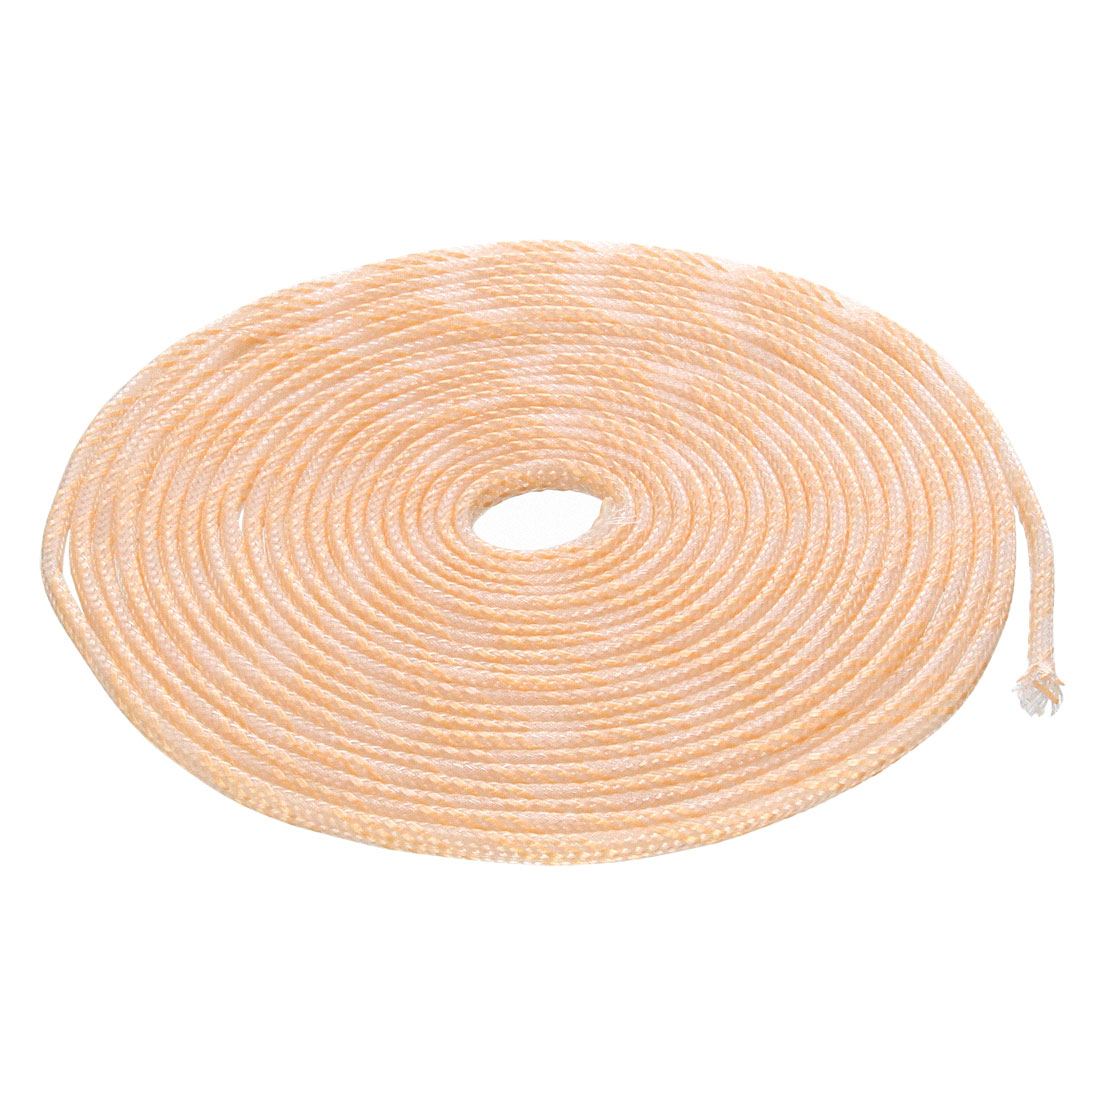 3mm Dia Tight Braided PET Expandable Sleeving Cable Wrap Sheath Transparent Orange 16Ft